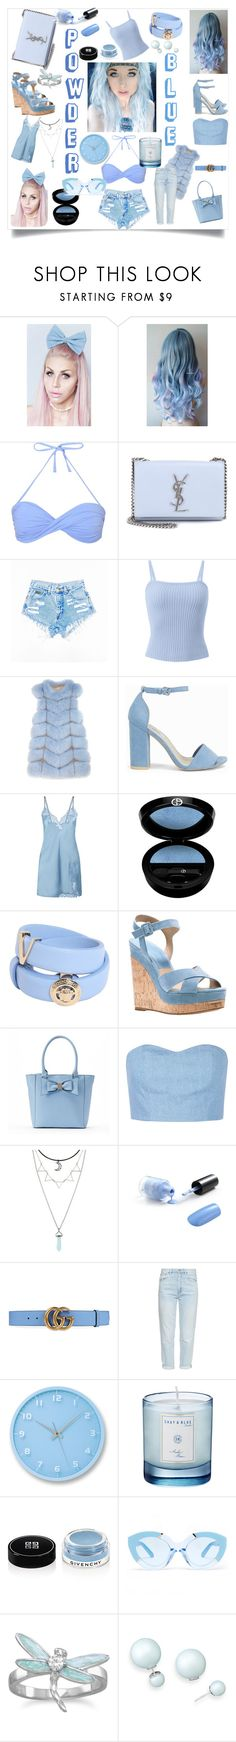 """""""Powder Blue Dreams"""" by neesyrn ❤ liked on Polyvore featuring Melissa Odabash, Yves Saint Laurent, Pologeorgis, Nly Shoes, Giorgio Armani, Versace, Michael Kors, Apt. 9, Julien David and Gucci"""